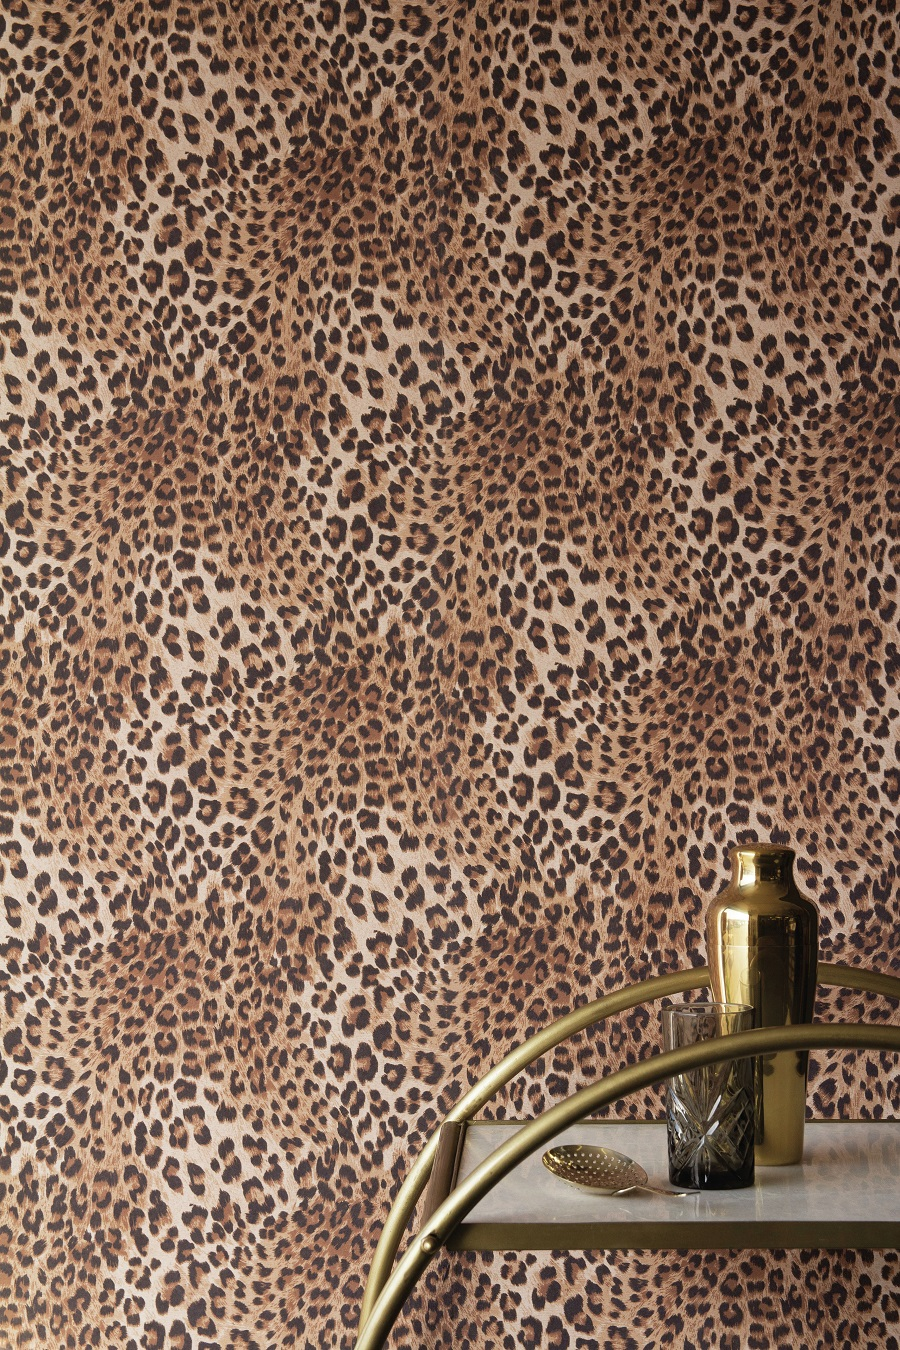 Is Leopard Print The New Neutral